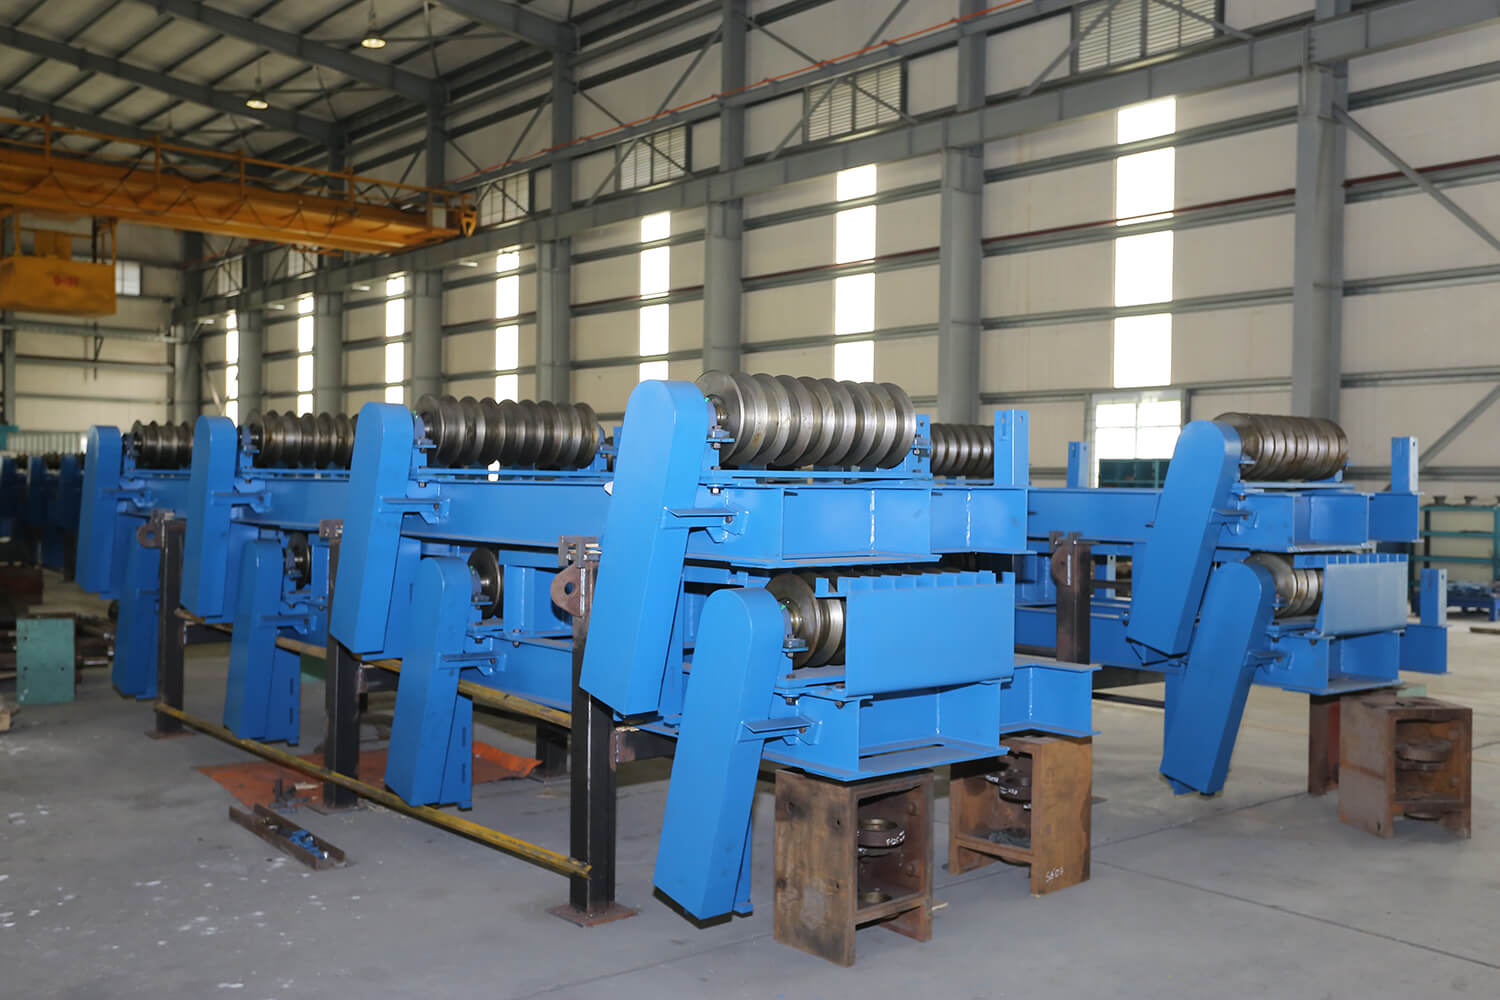 Steel laminating equipment